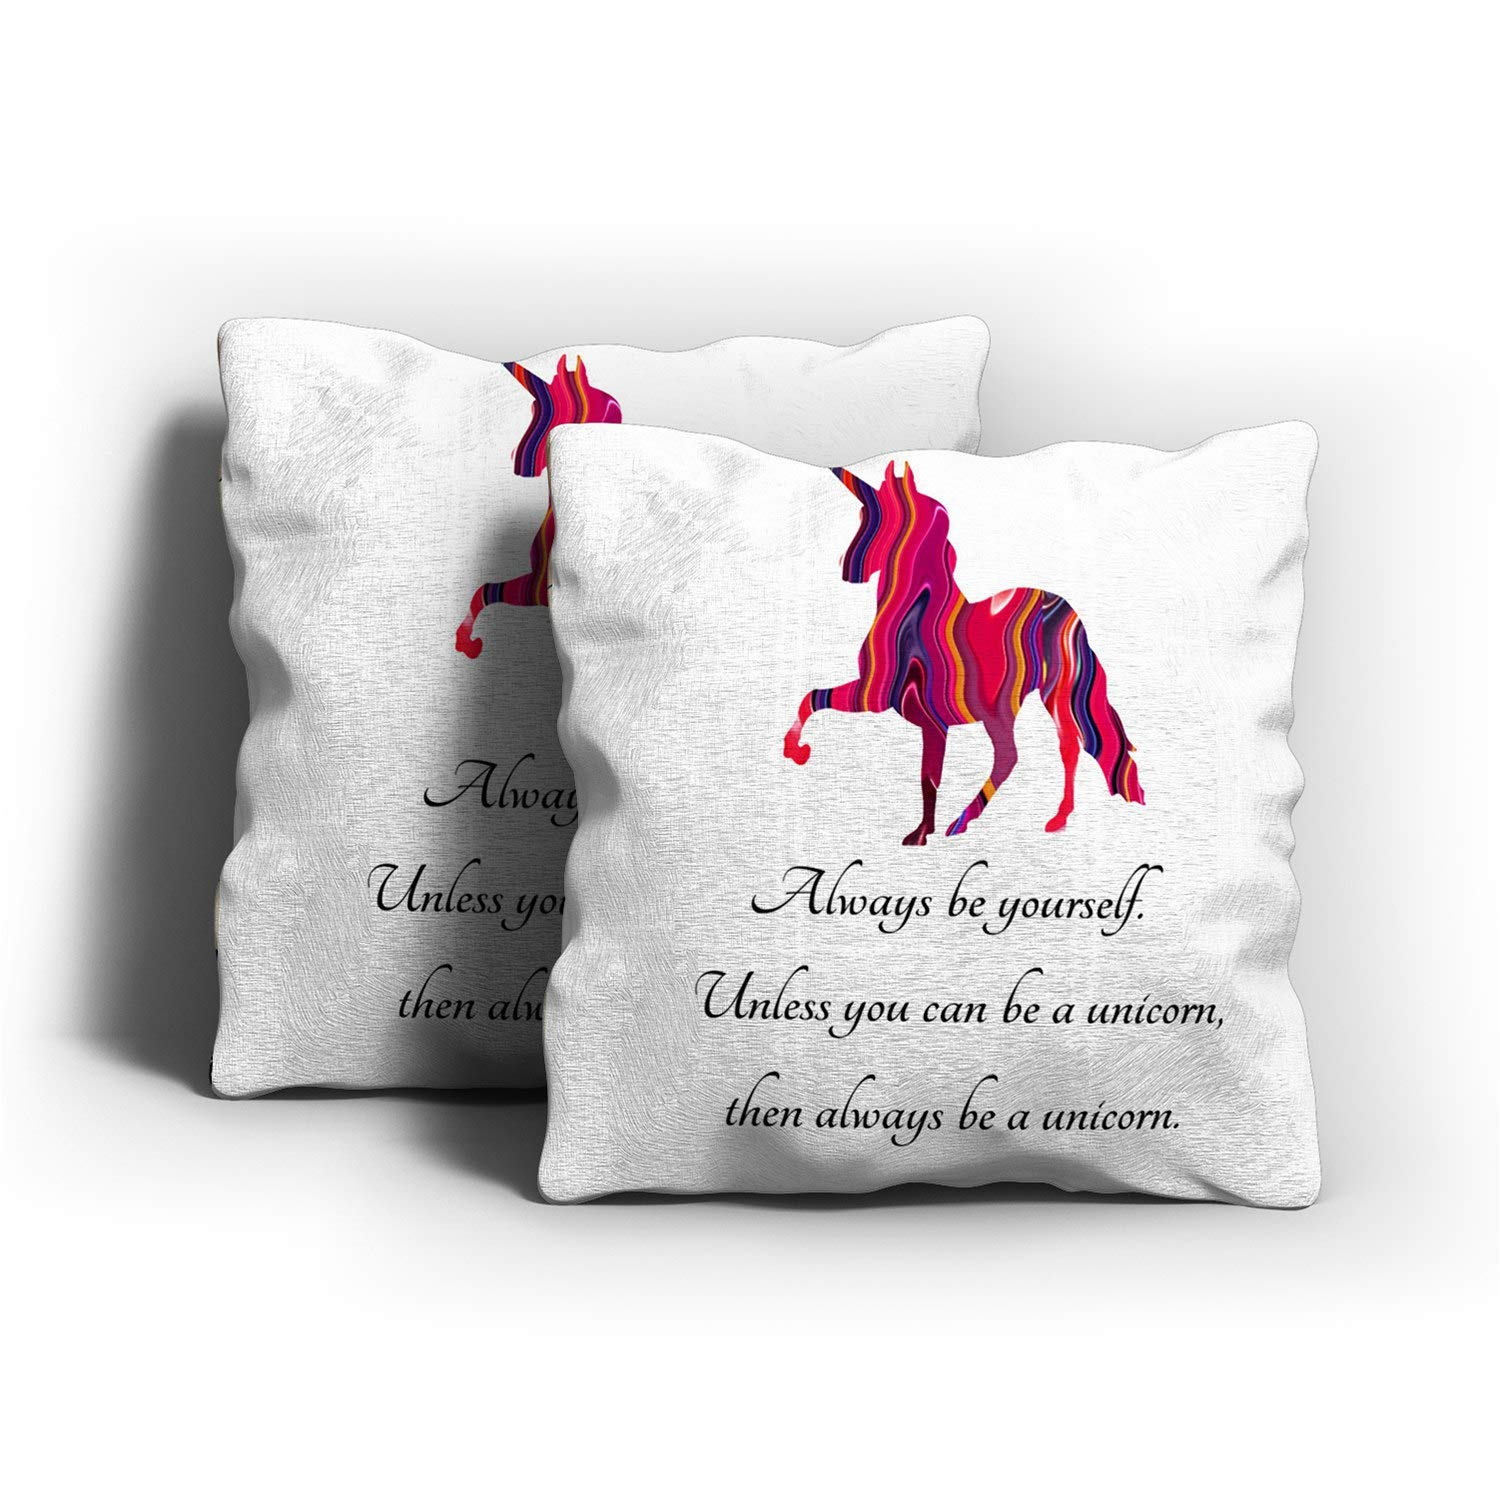 Sokiiy Unicorn with Cute Saying on It Romantic Hidden Zipper Home Sofa Decorative Throw Pillow Cover Cushion Case Square 18x18 Inch Two Sides Design ...